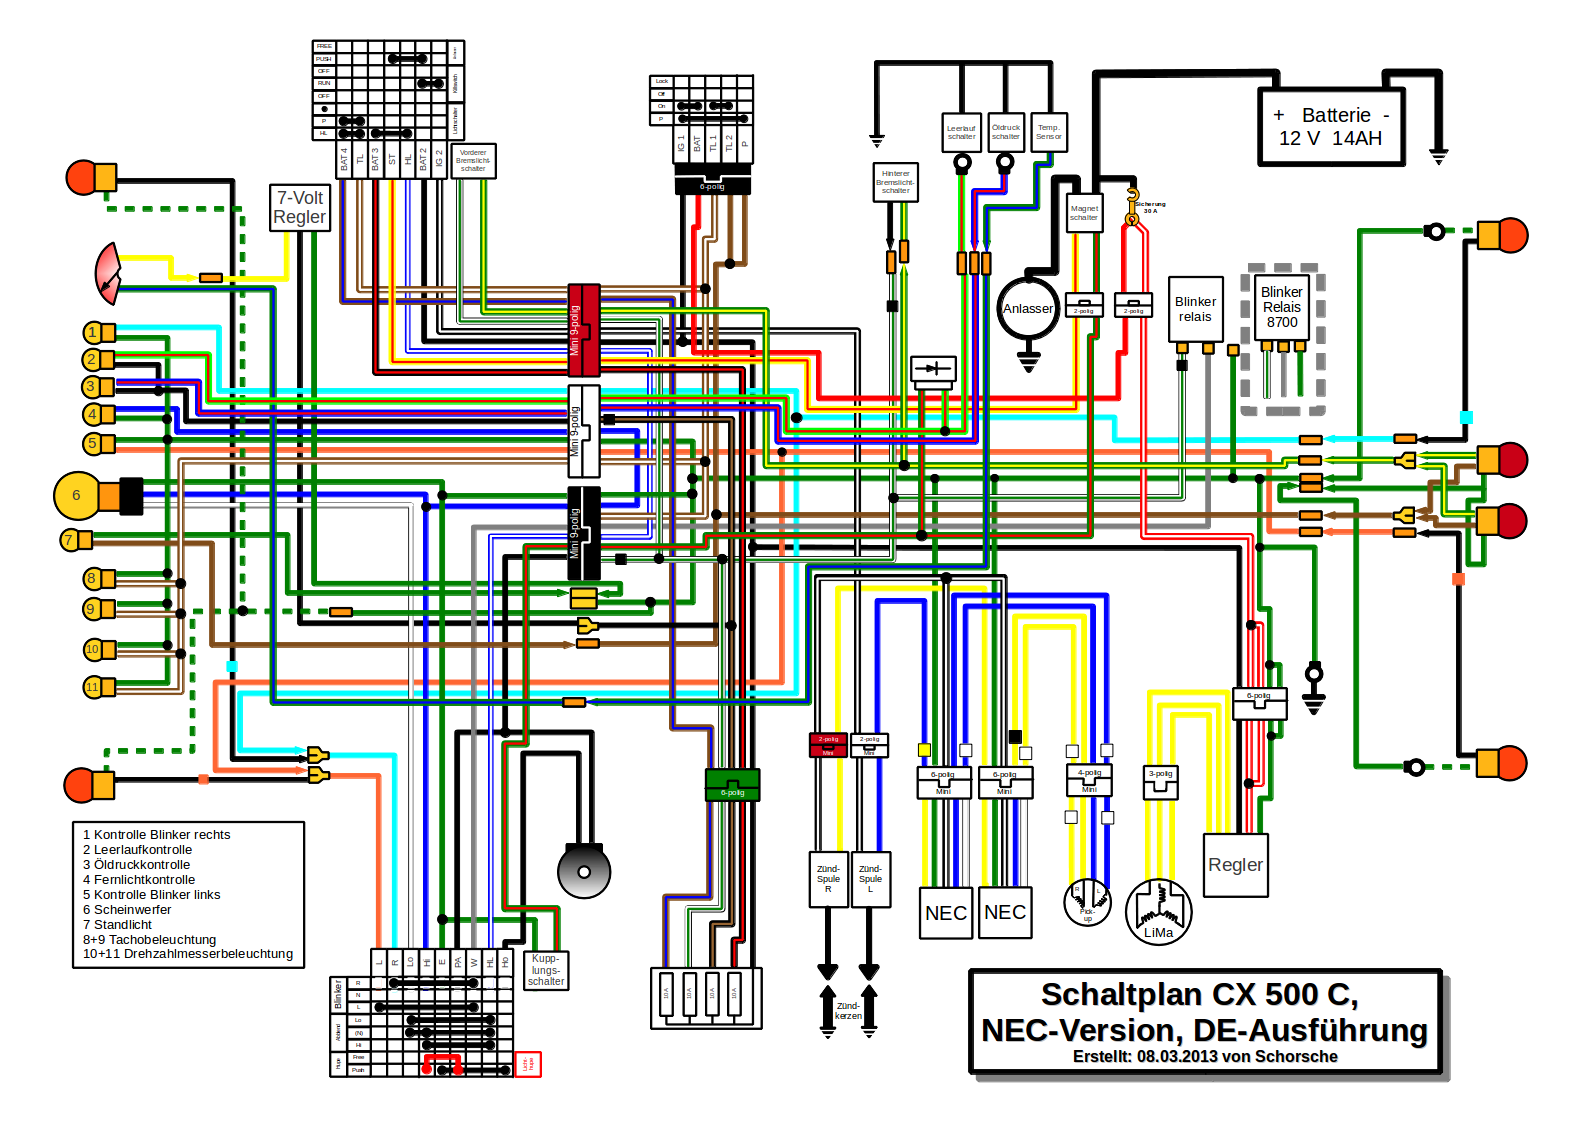 fj40 ignition switch wiring diagram with 1981 Honda Cx500 Wiring Diagram on Instrument Voltage Regulator Wiring Diagram also Mt 27 Wiring Diagram additionally International Truck Ignition Switch Wiring likewise Painless Wiring Harness Gauge as well Showthread.